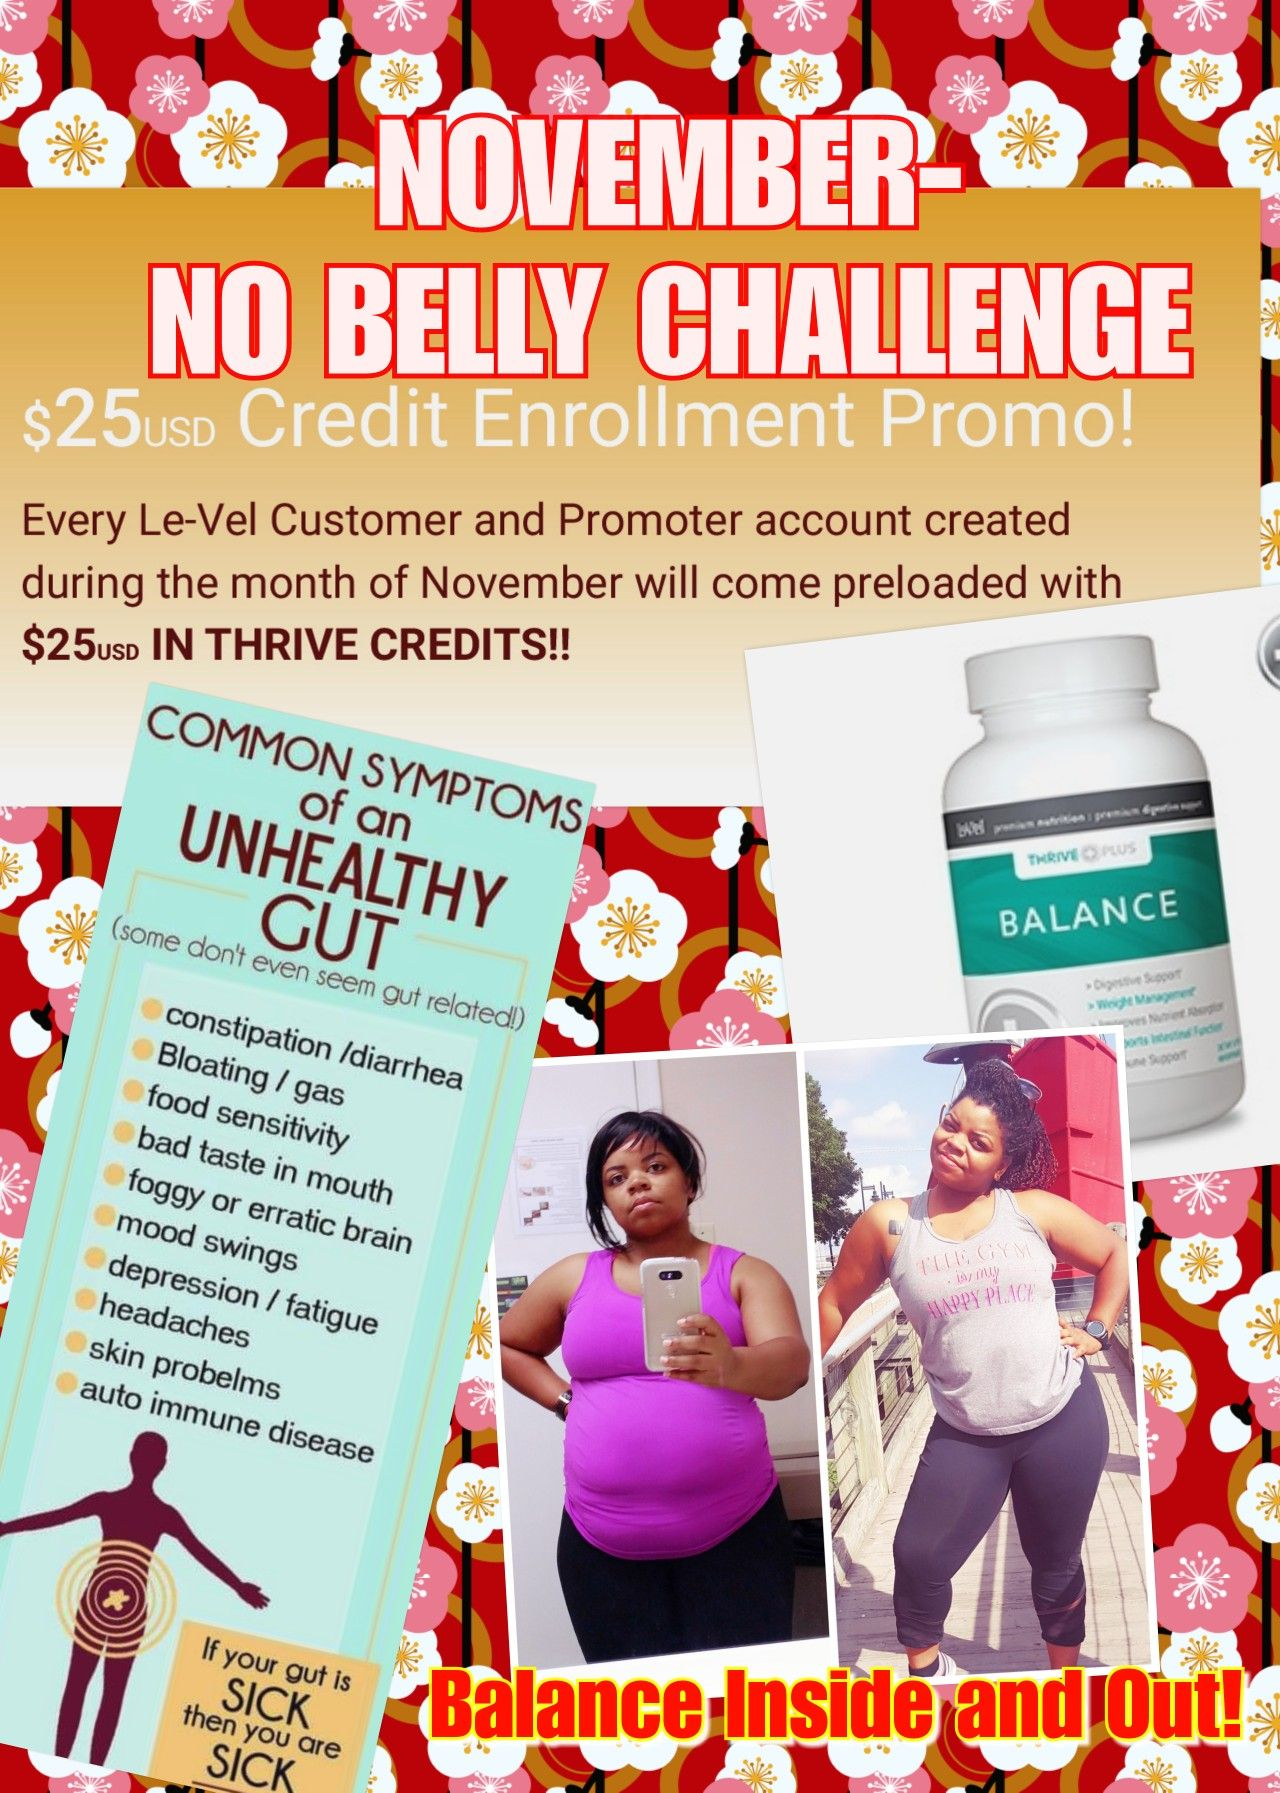 THRIVE by Le-Vel: The #1 health & wellness movement, Thrive 8-Week